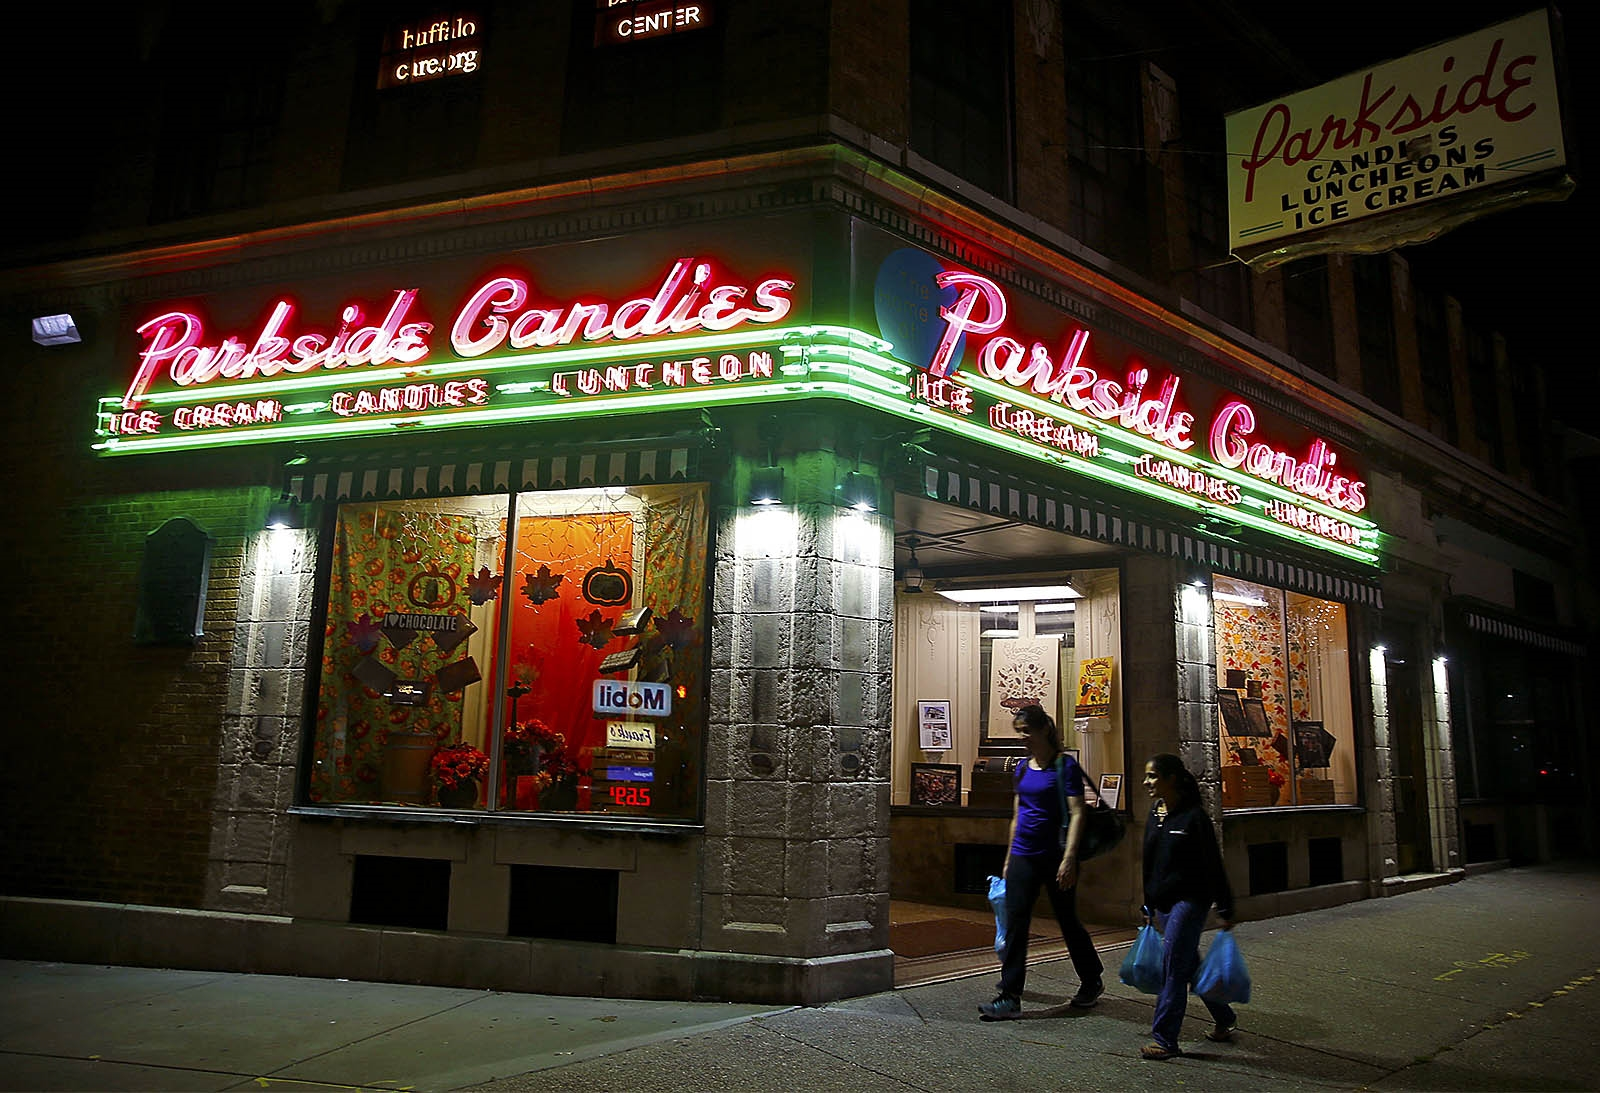 Parkside Candies recently restored neon sign lites up Main Street.